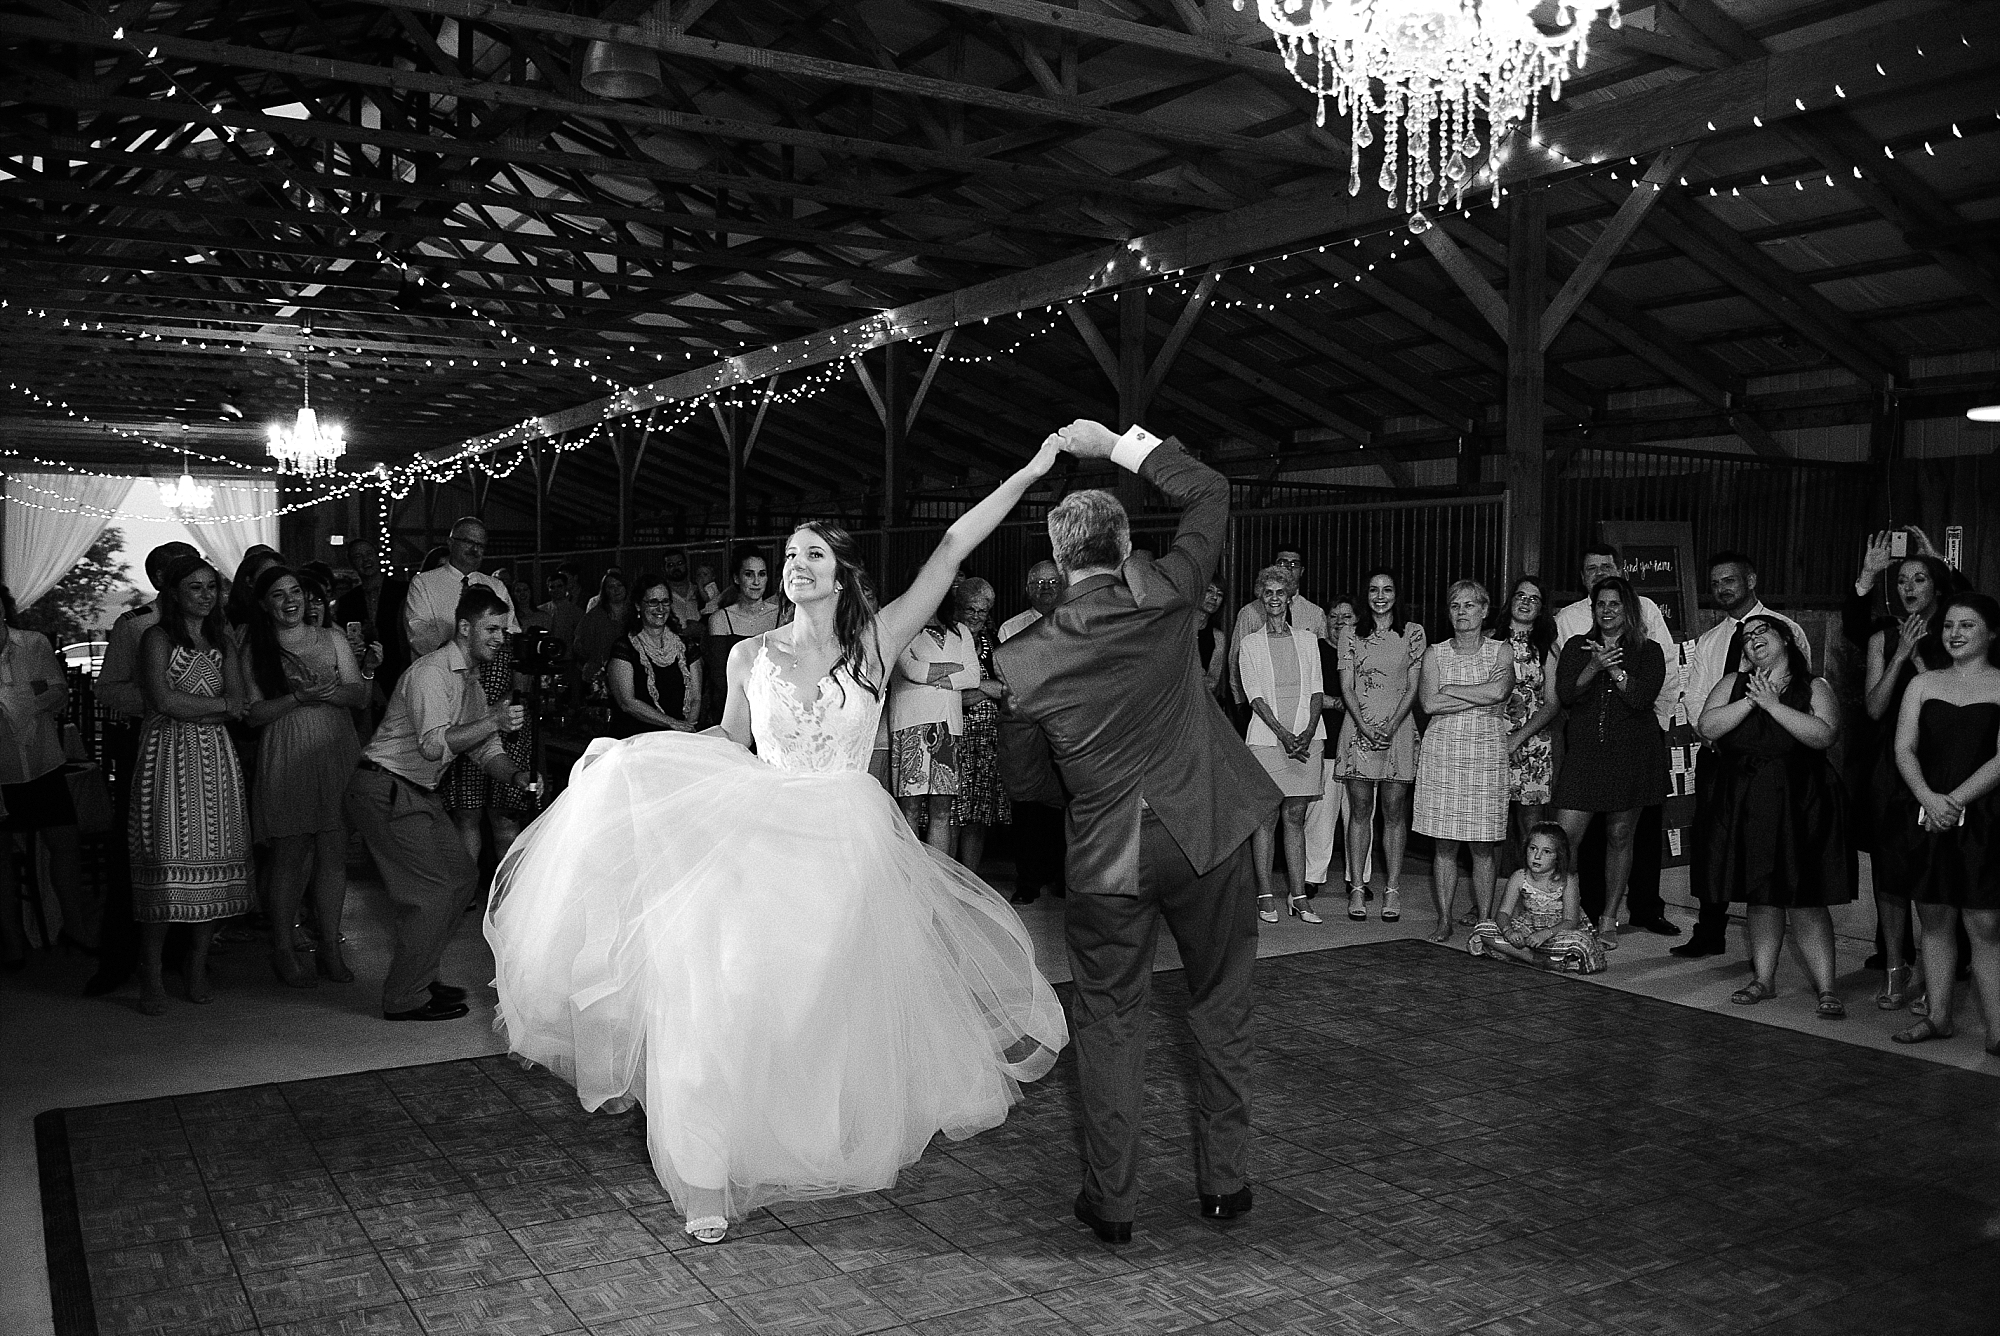 The bride and her dad did an amazing dance together!  So cute!